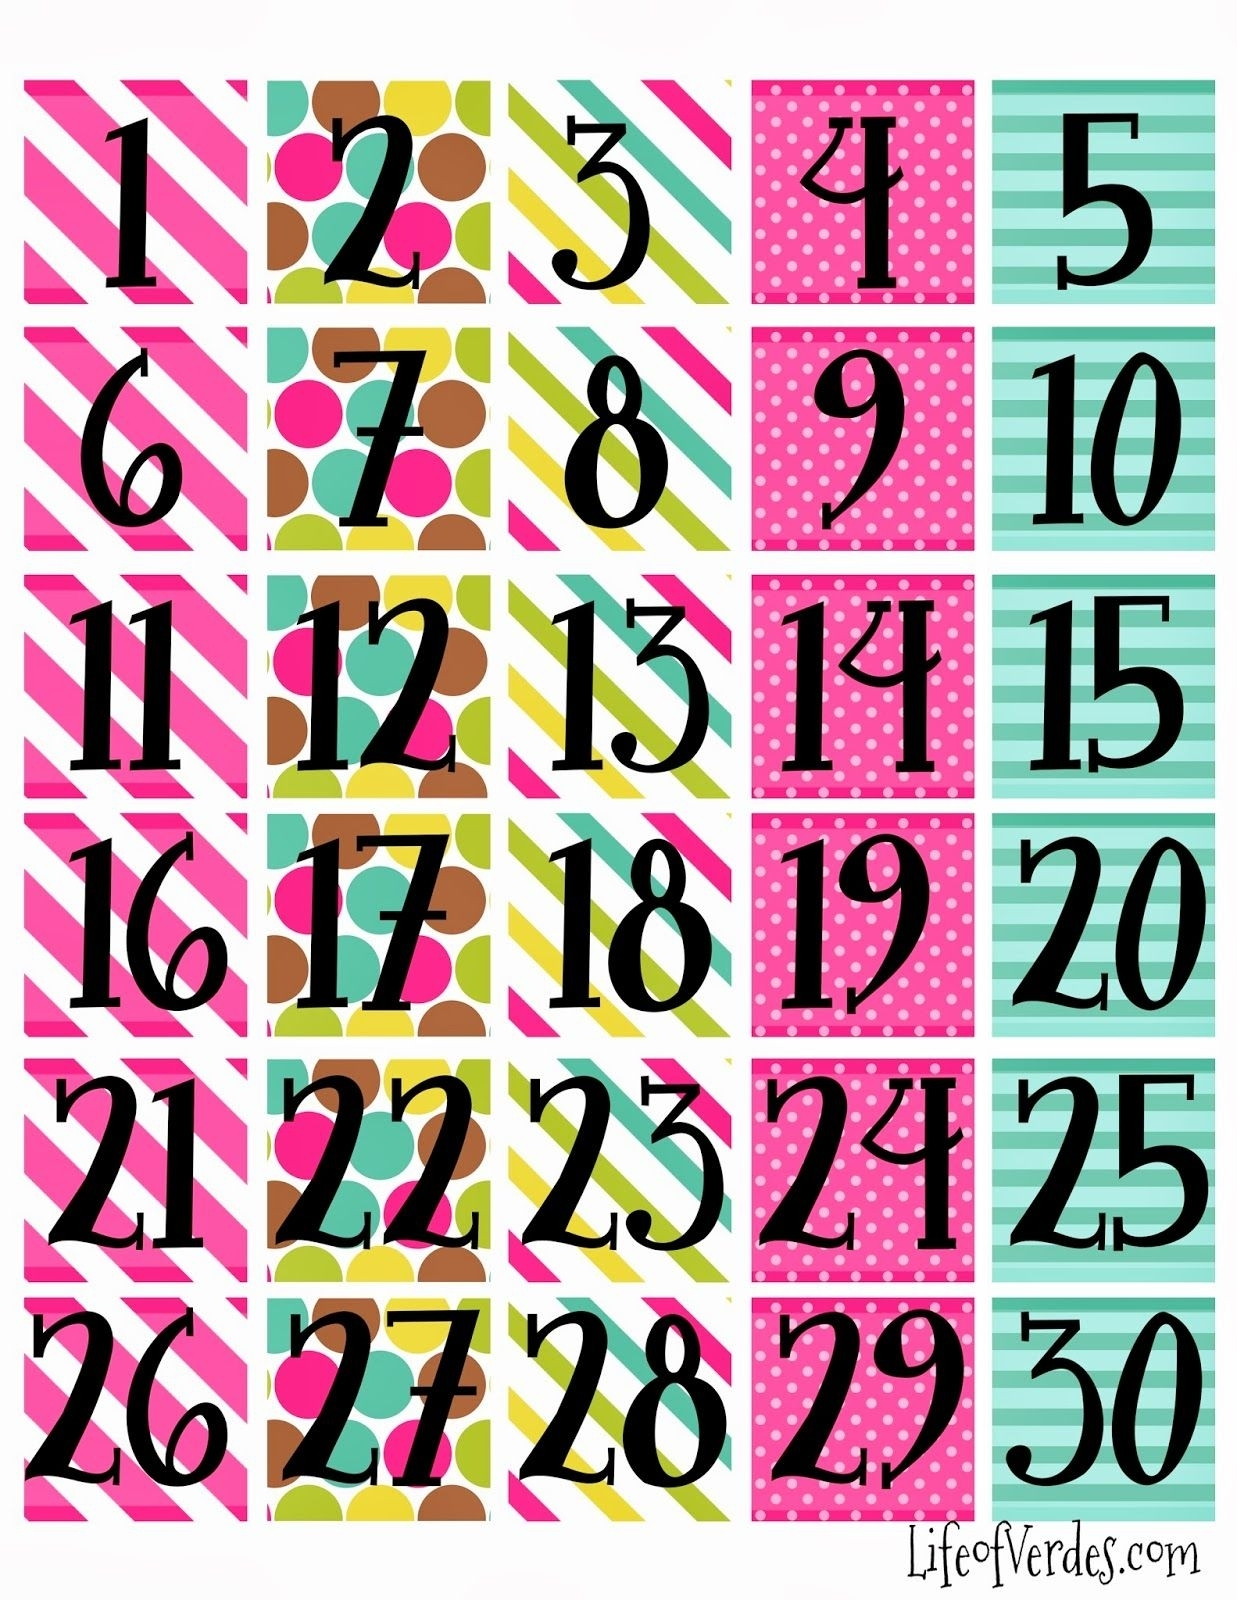 Free+Printable+Calendar+Numbers | Household Info | Free Printable with Advent Calendar Printable Numbers Calendar Template